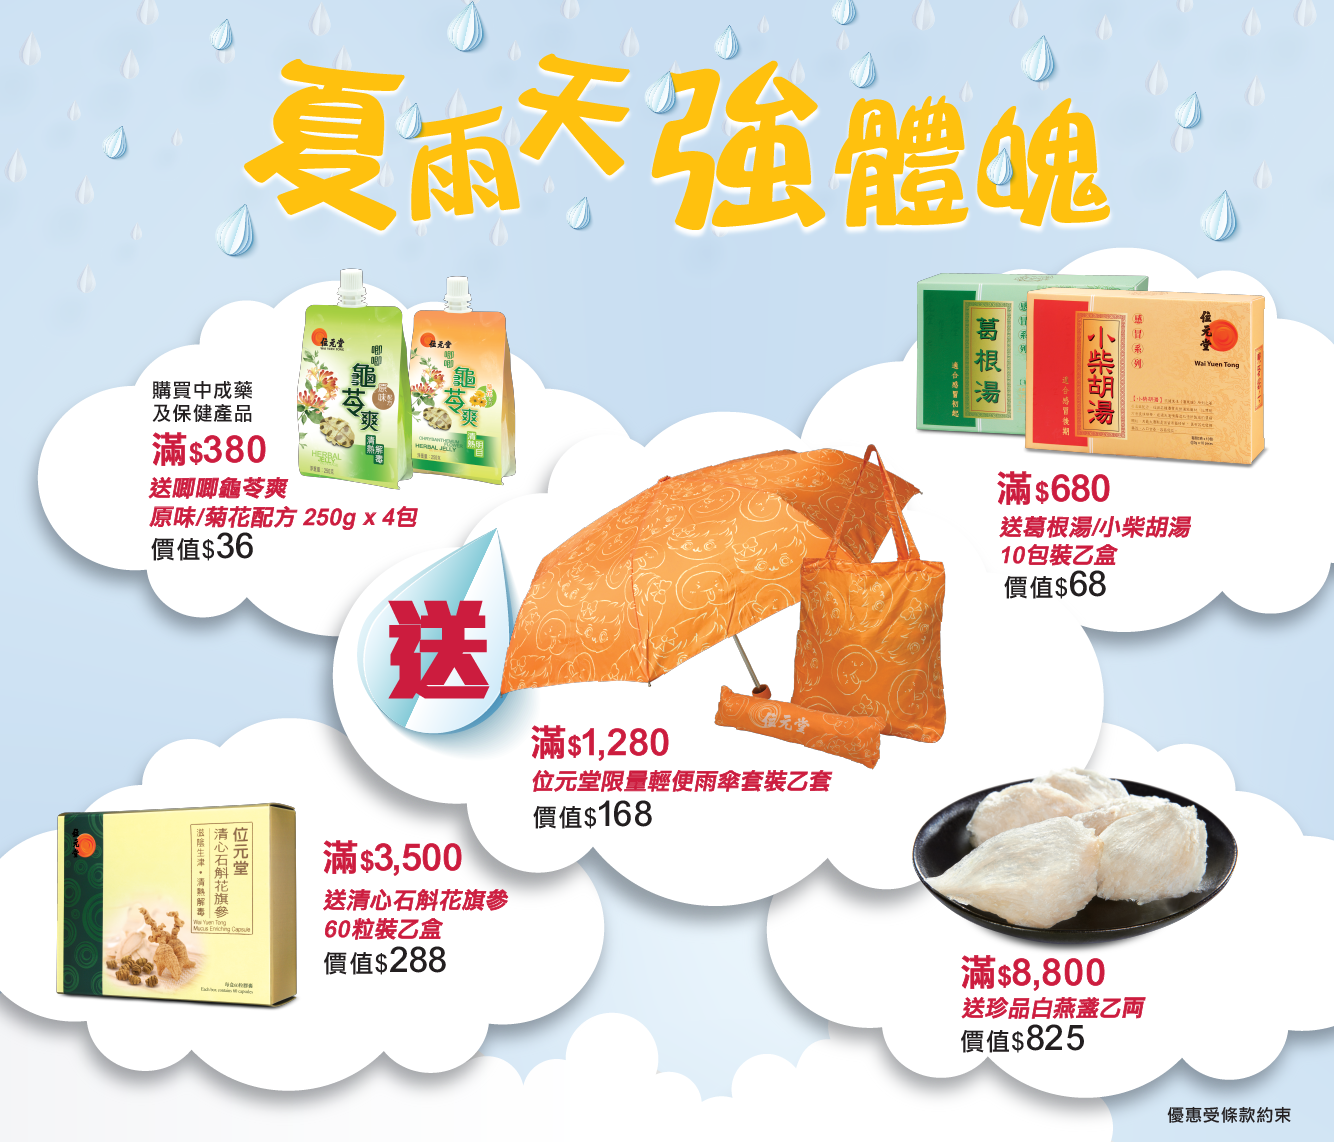 <!--:en-->Rainy Summer Promotion<!--:--><!--:cn-->夏雨天强体魄<!--:--><!--:hk-->夏雨天強體魄<!--:-->